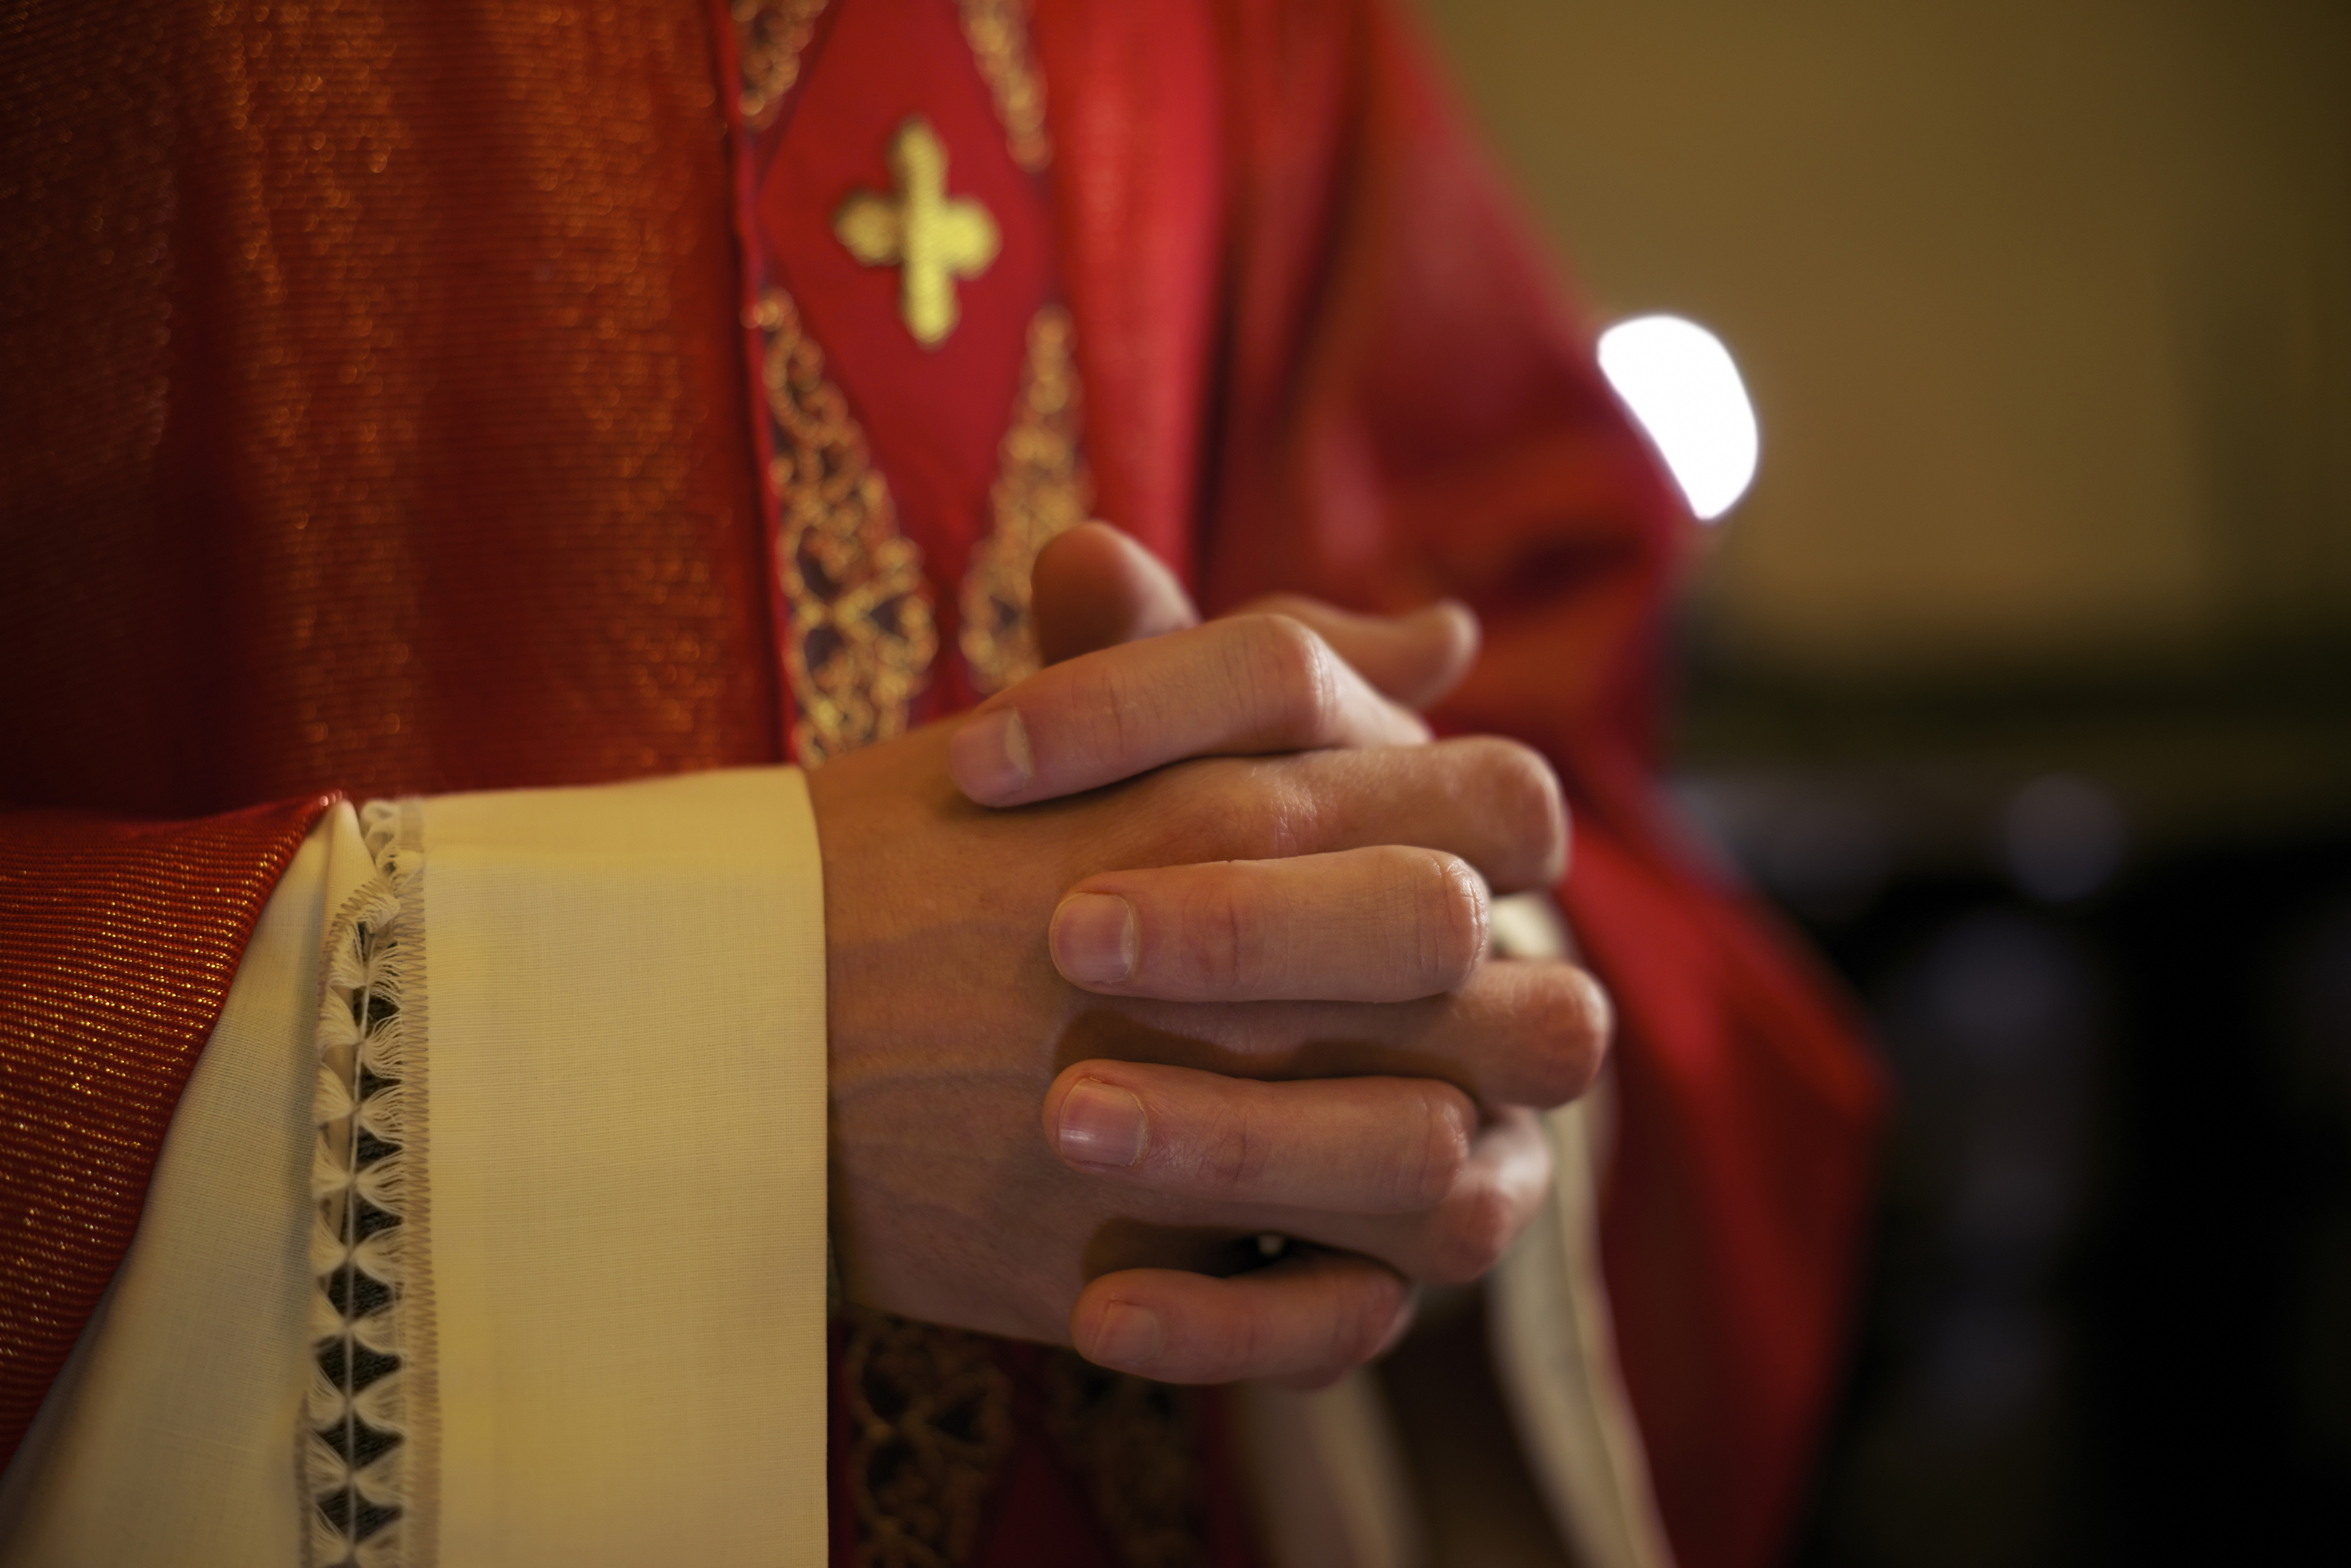 Two former Monsignors on Staten Island are among the latest members of the clergy to be accused of sexual abuse.